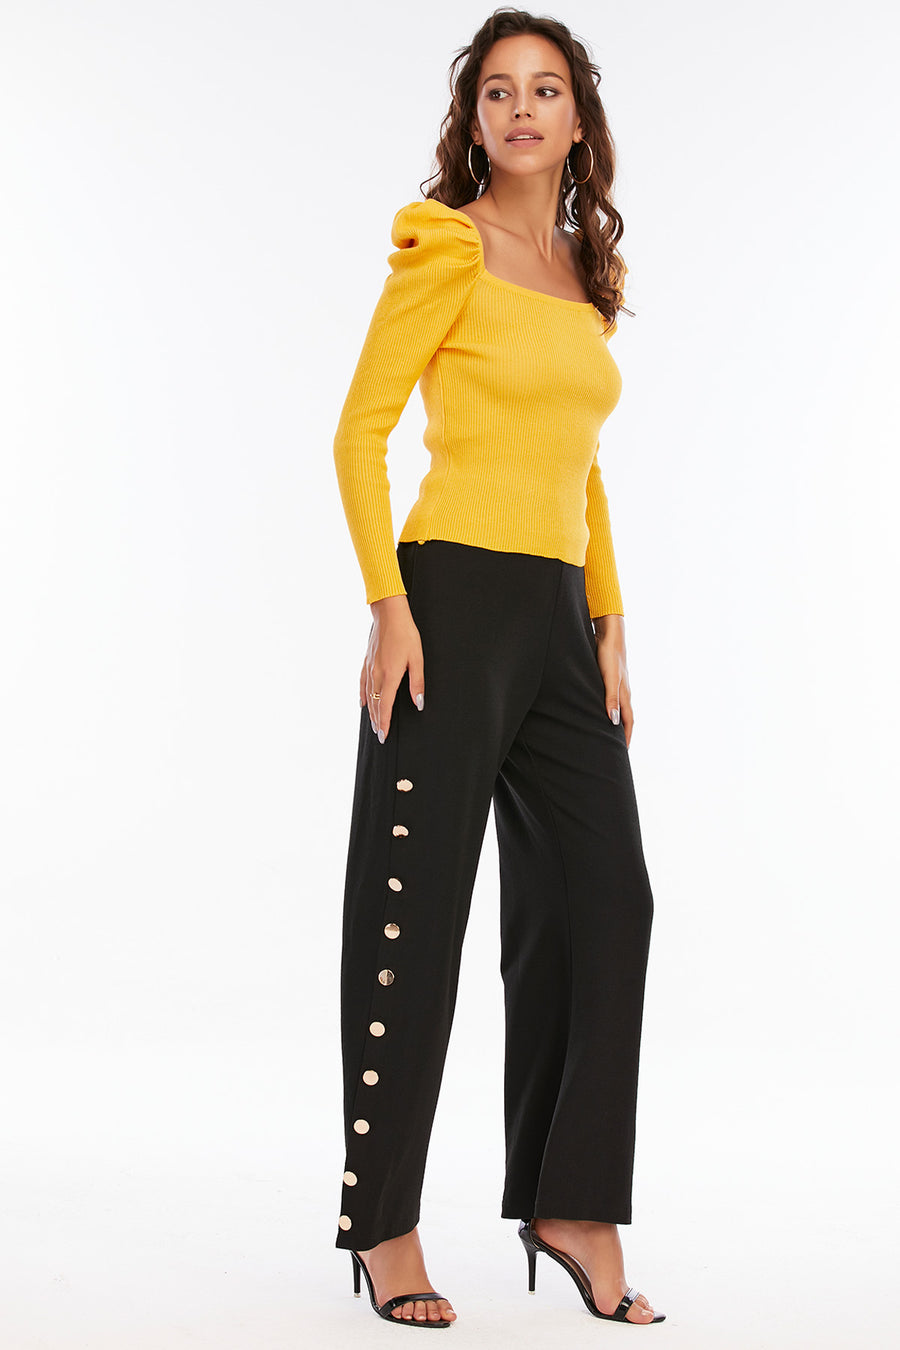 Mantra Pakistan Yellow Top with Puffy Sleeves | Western Wear